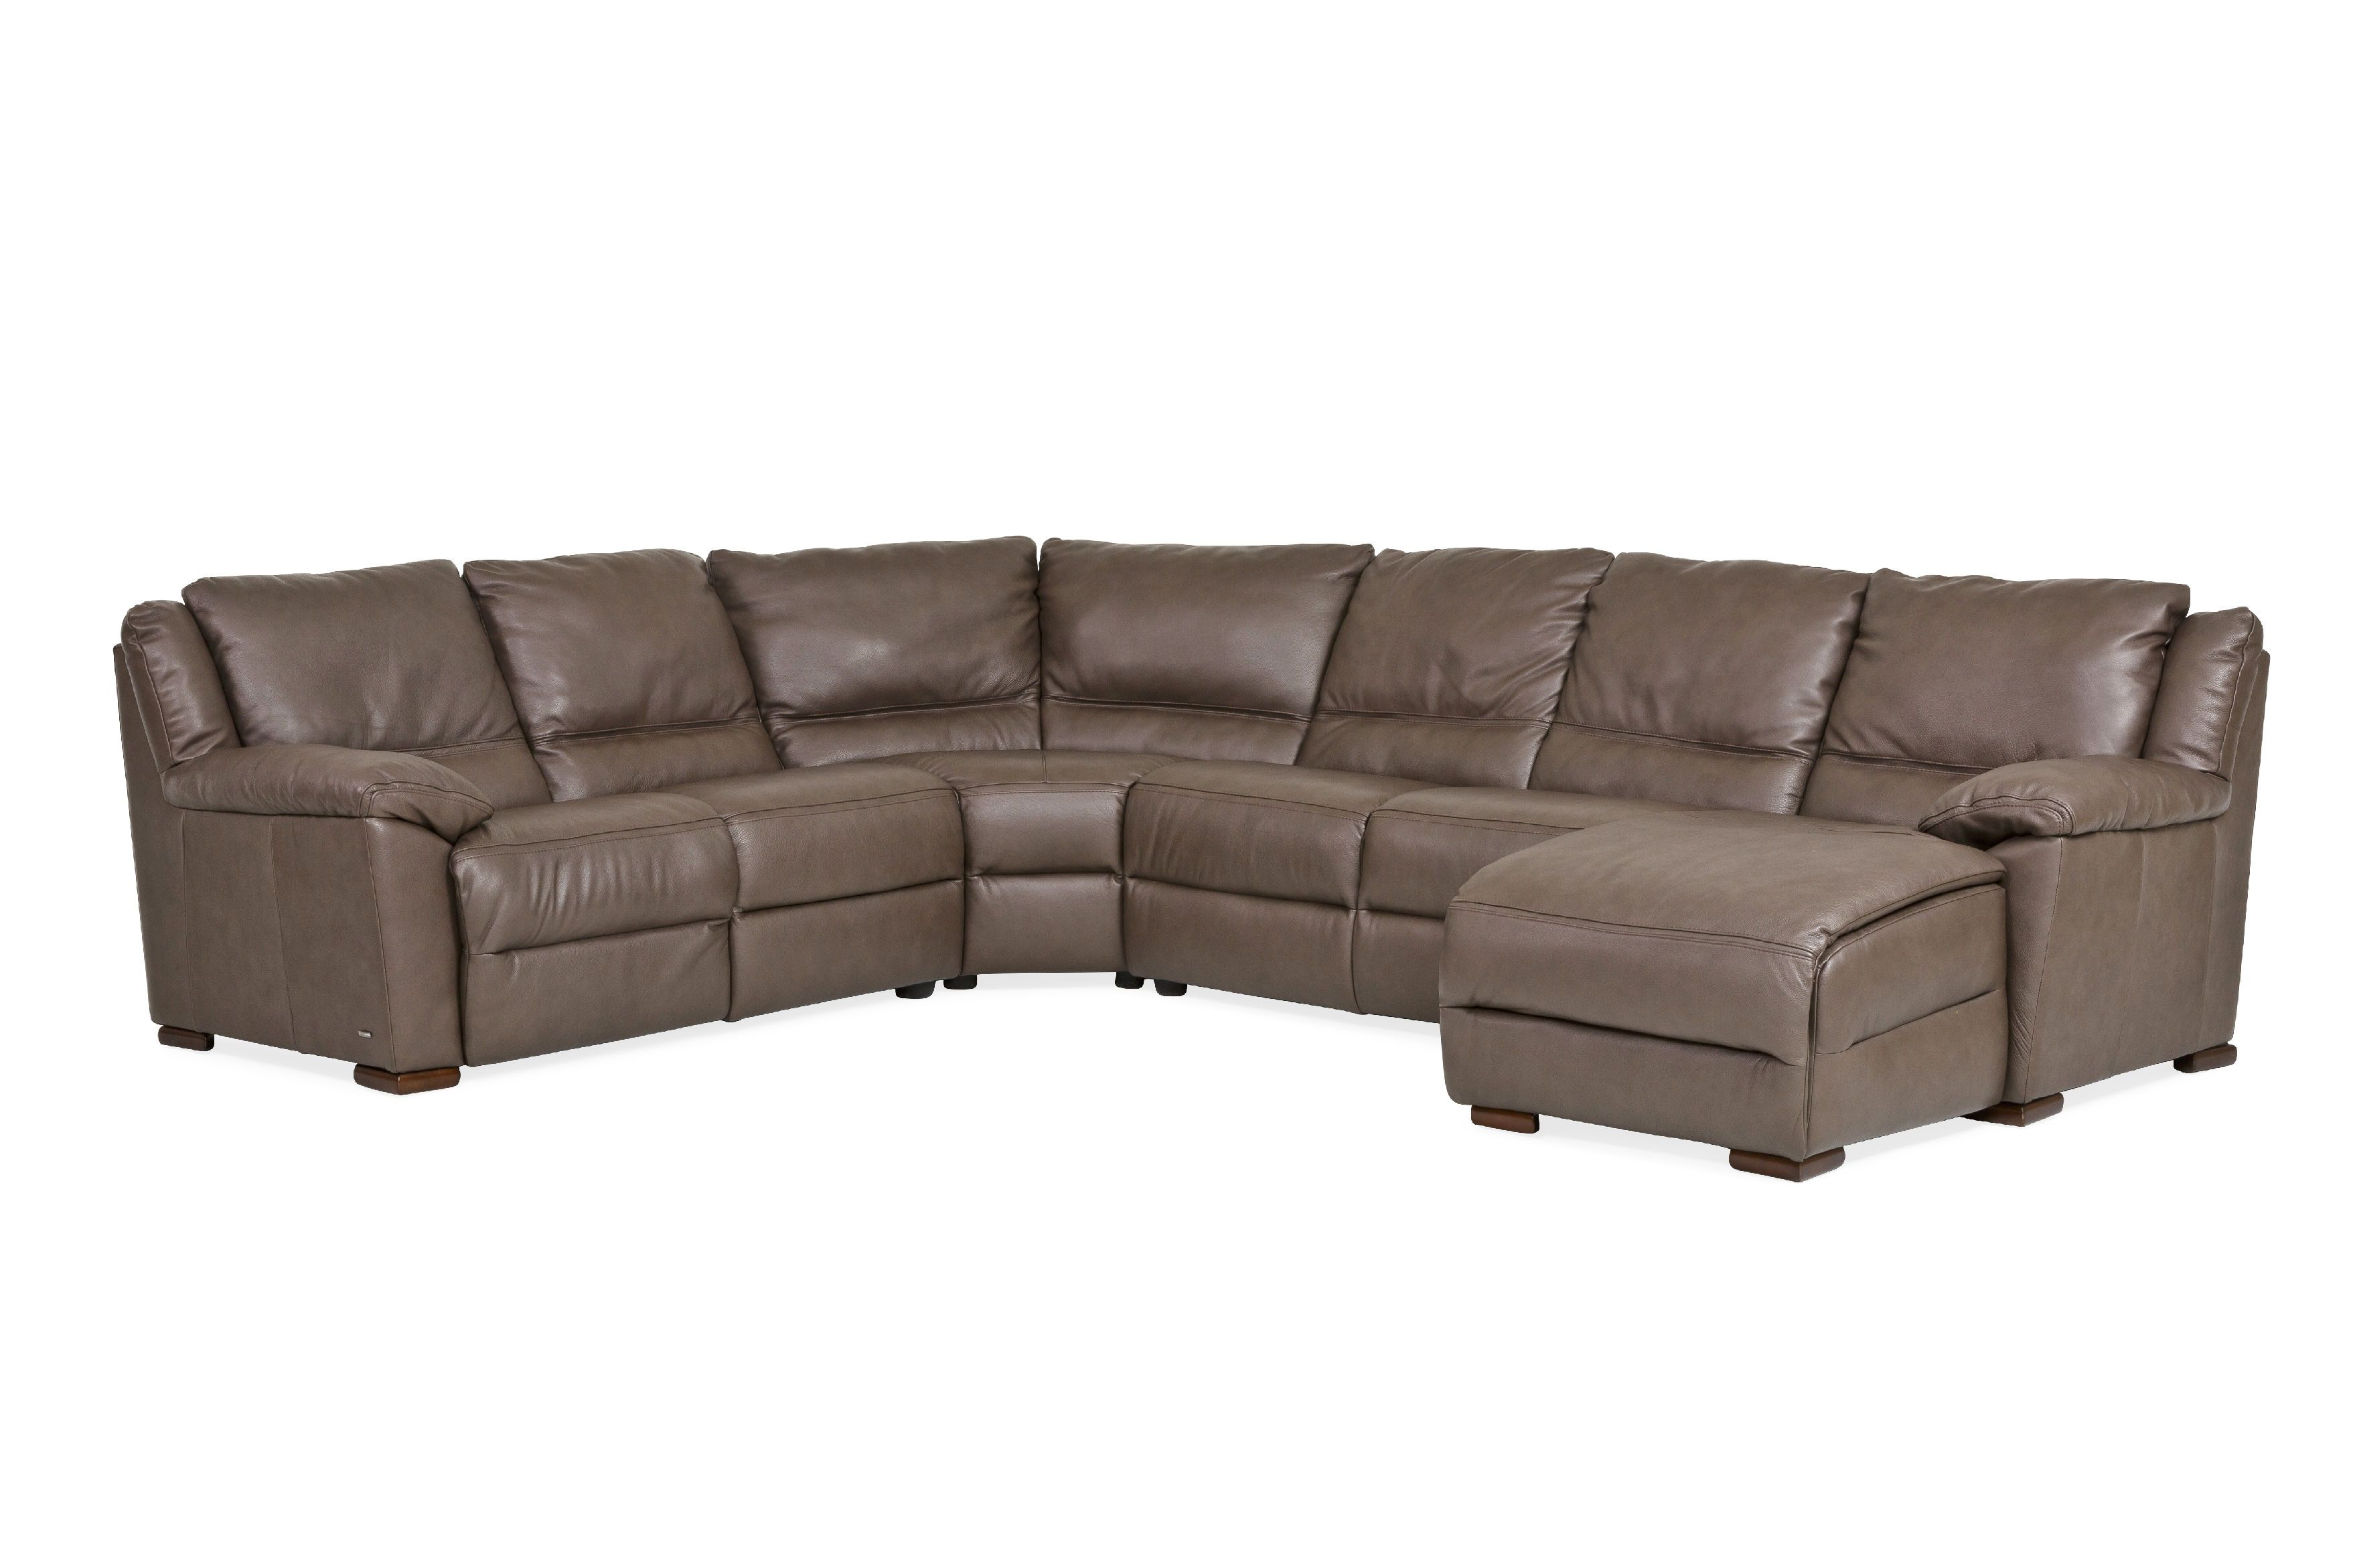 100 Natuzzi Leather Sectional Features A Recliner And Chaise Unmatched Mushroom Color Is Ideal For Warm Cool Schemes Making This The